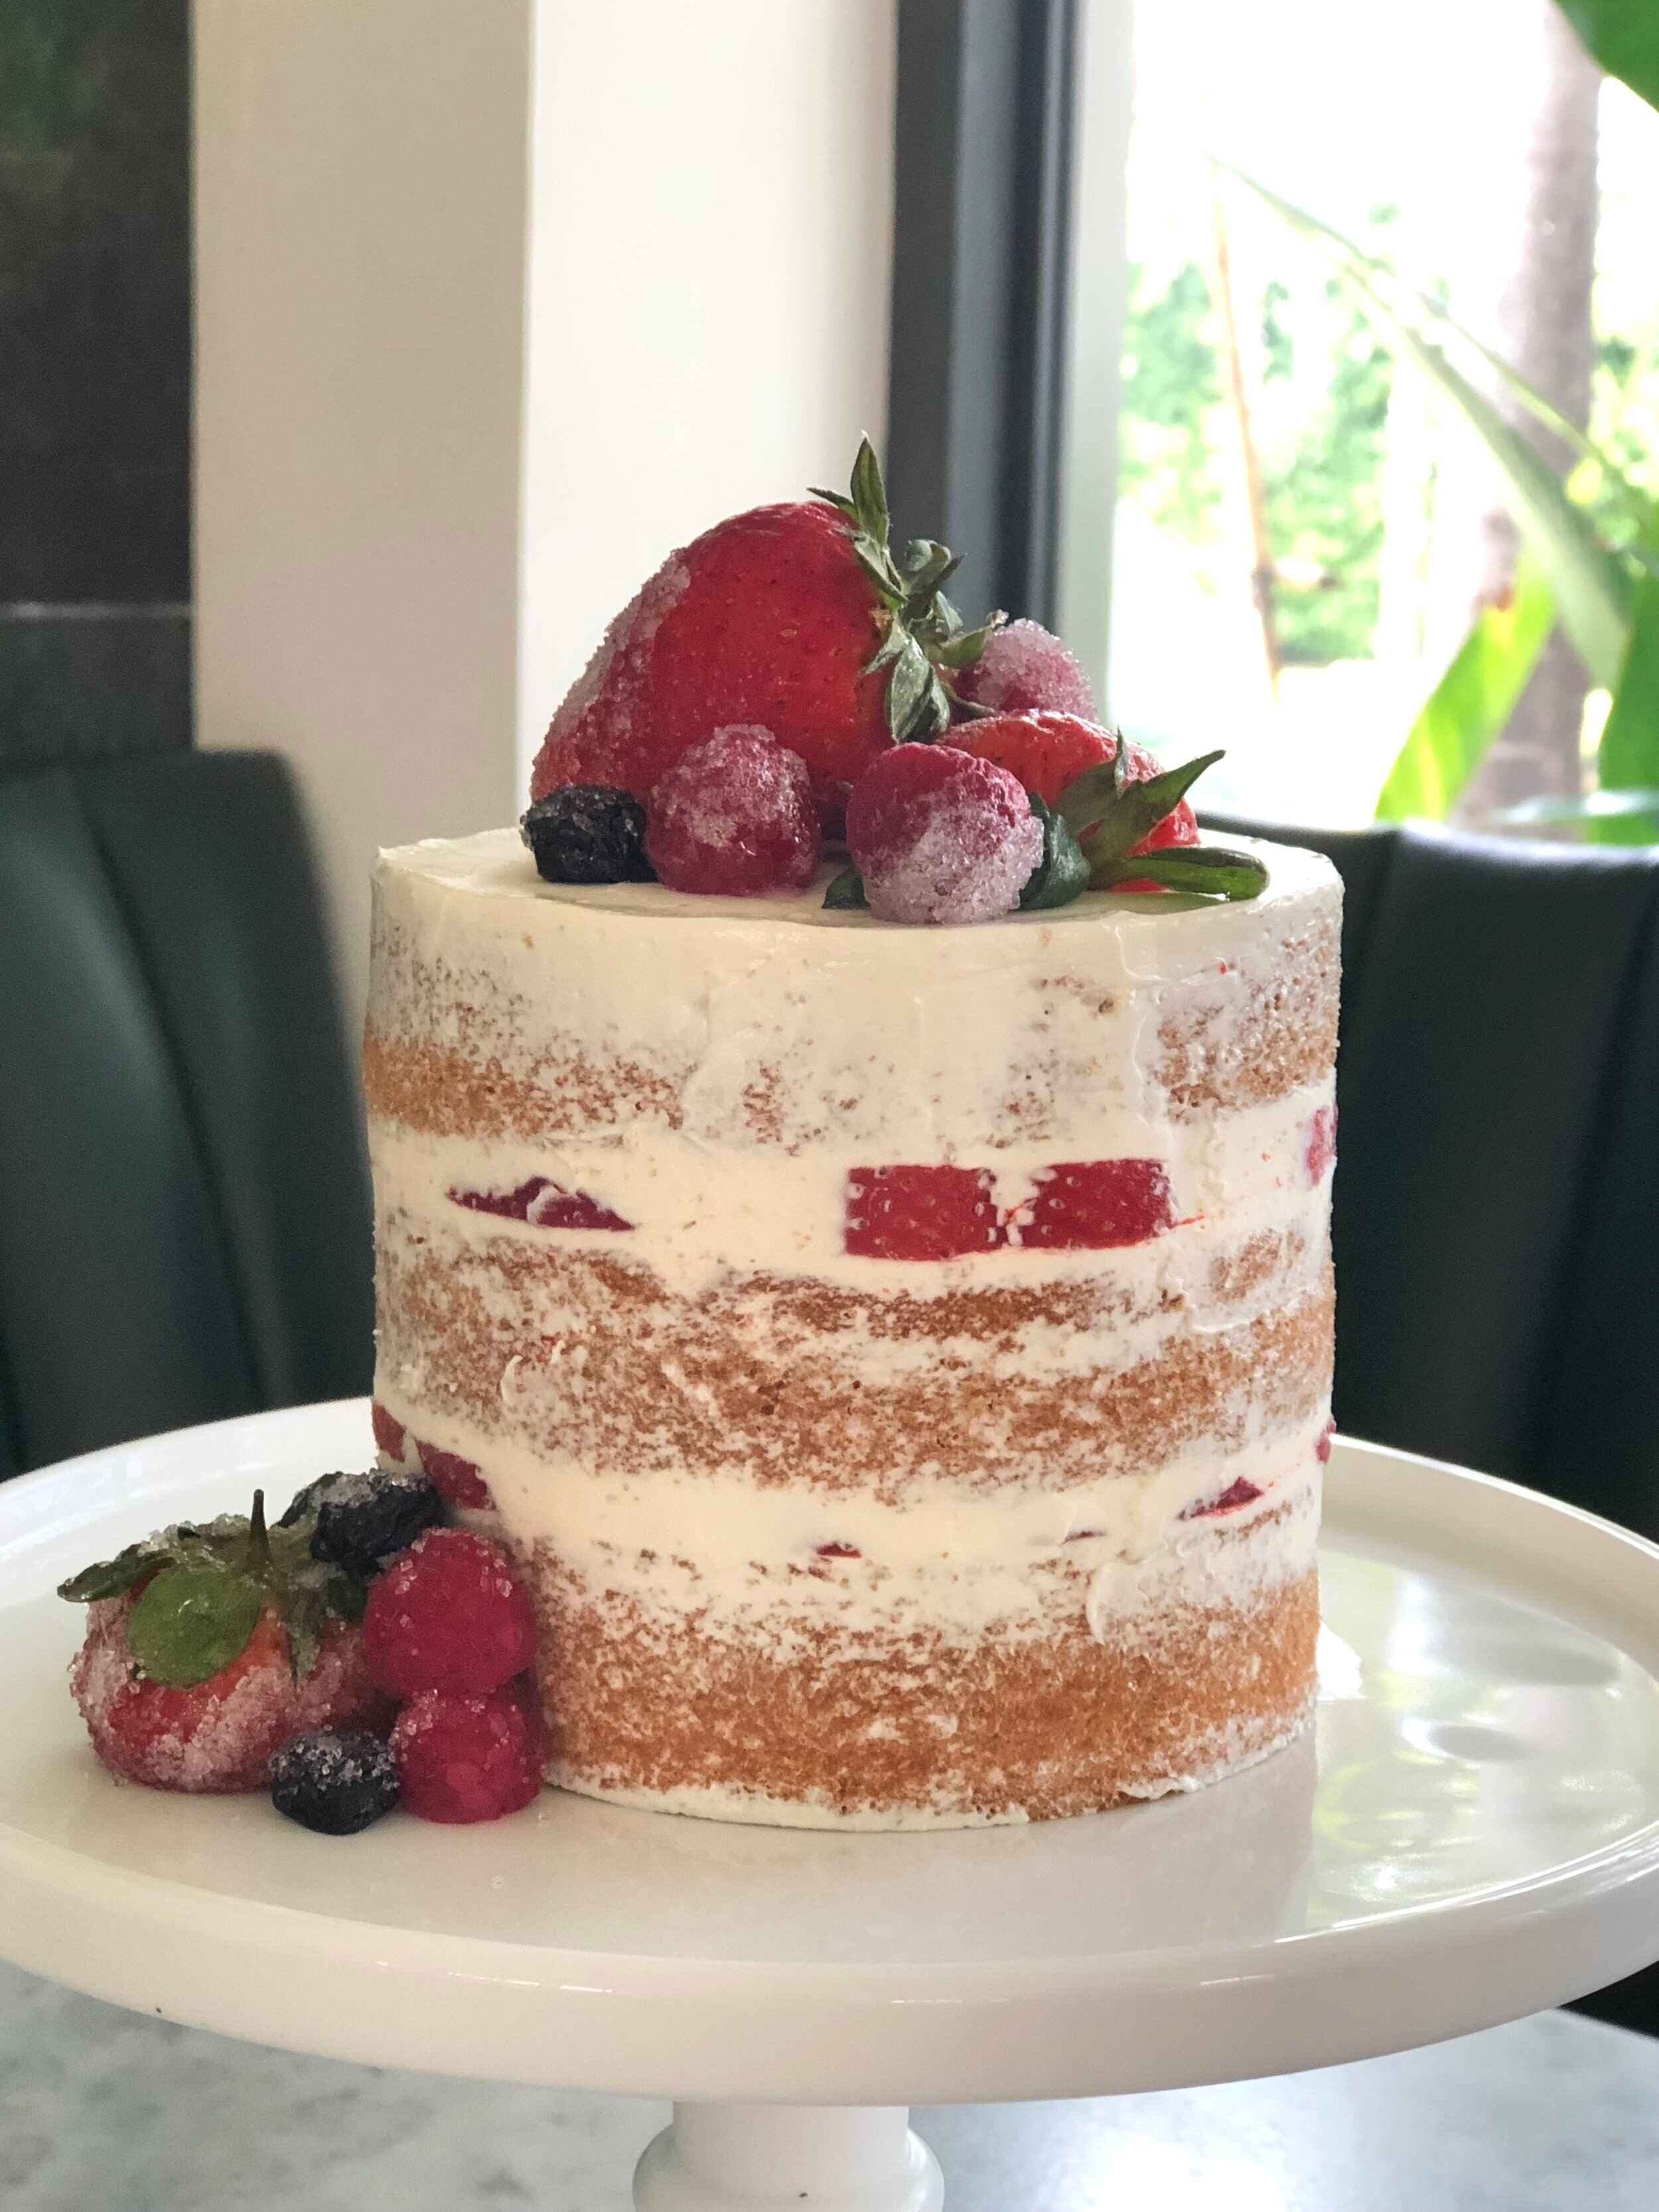 Our #6 Naked Cake with strawberries and blueberries, buttercream icing.